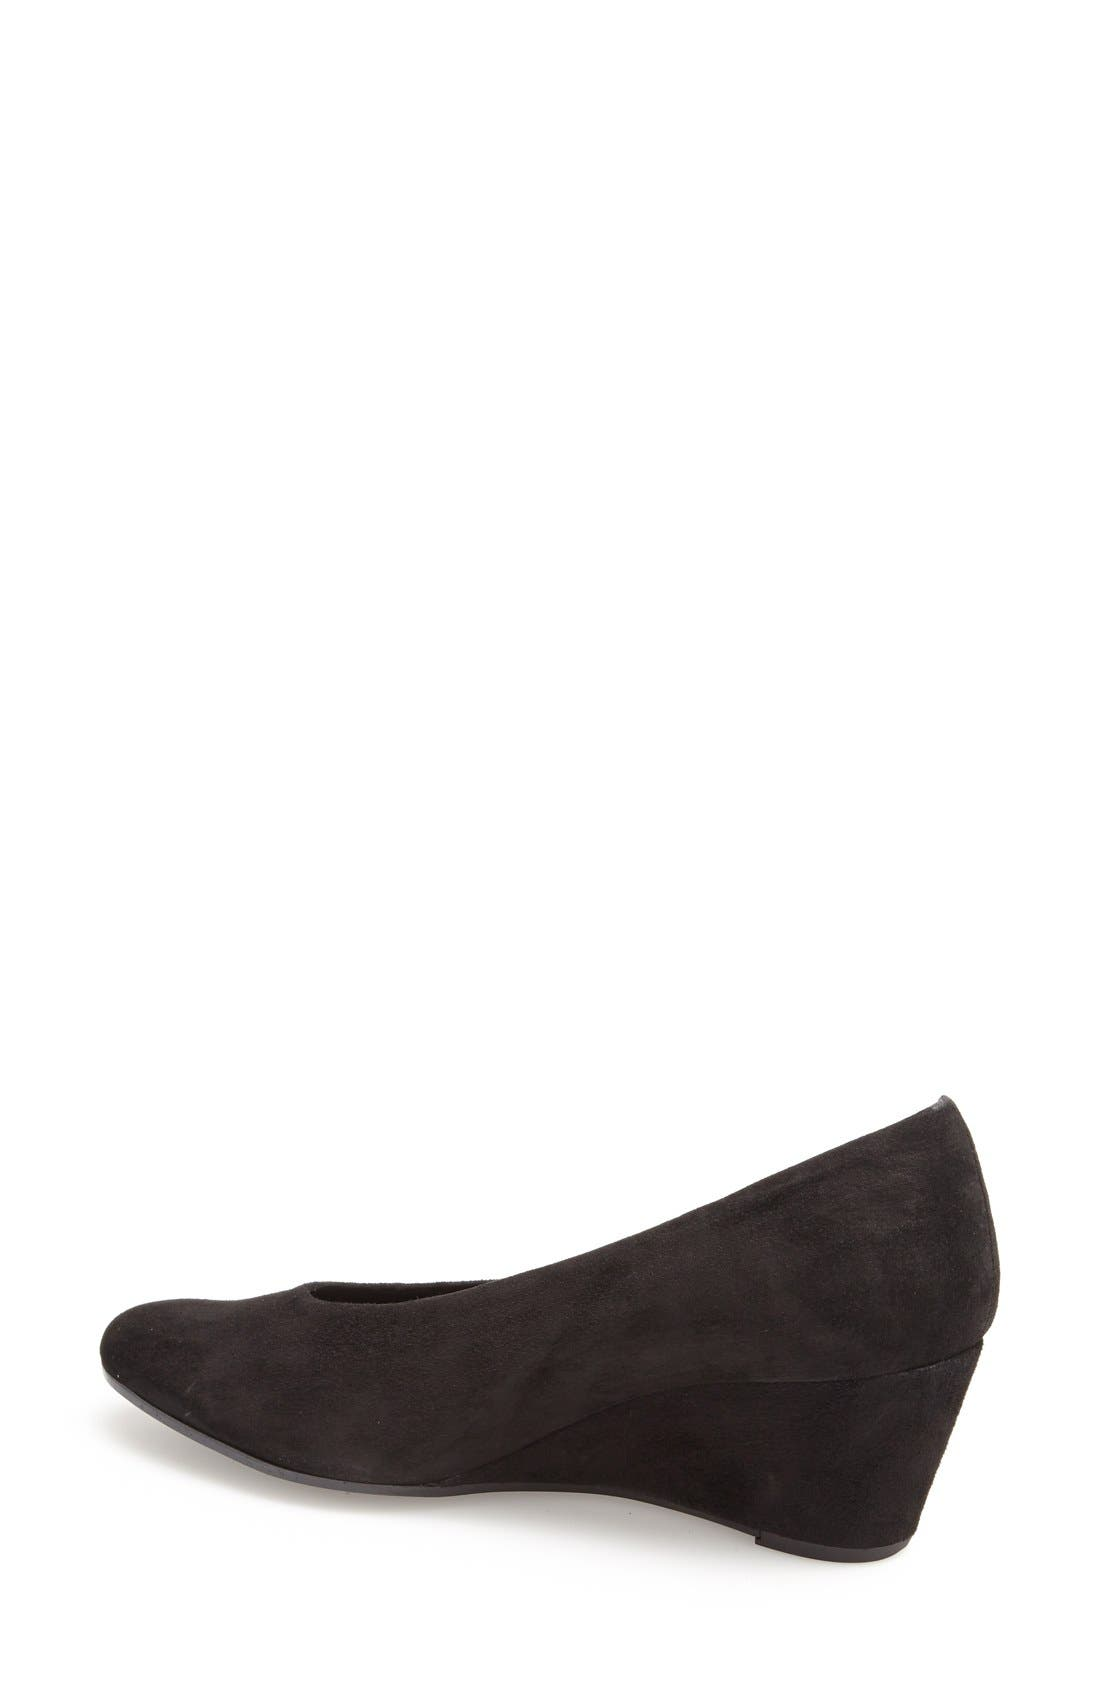 'Dilys' Wedge Pump,                             Alternate thumbnail 2, color,                             BLACK SUEDE